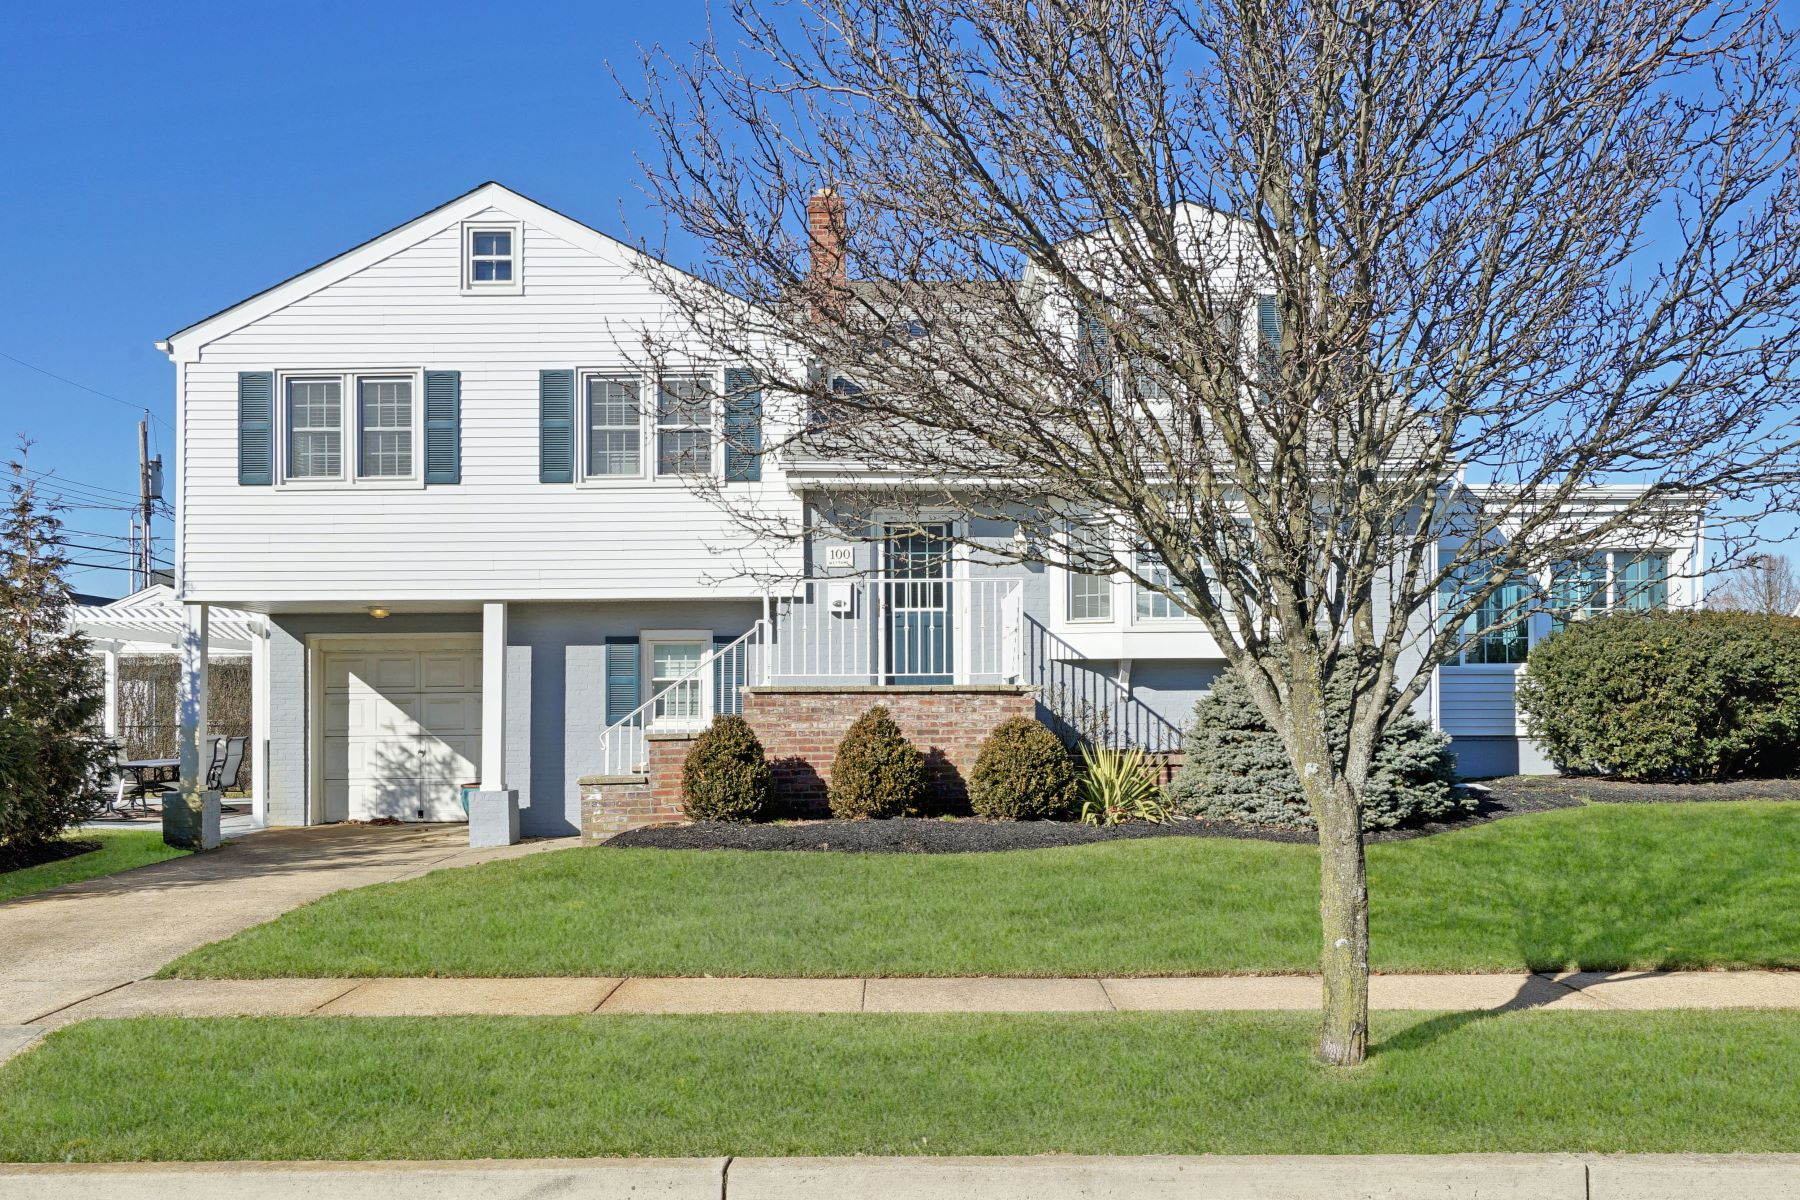 Single Family Homes for Active at Charming Shore Split-Level 100 Neptune Place Sea Girt, New Jersey 08750 United States